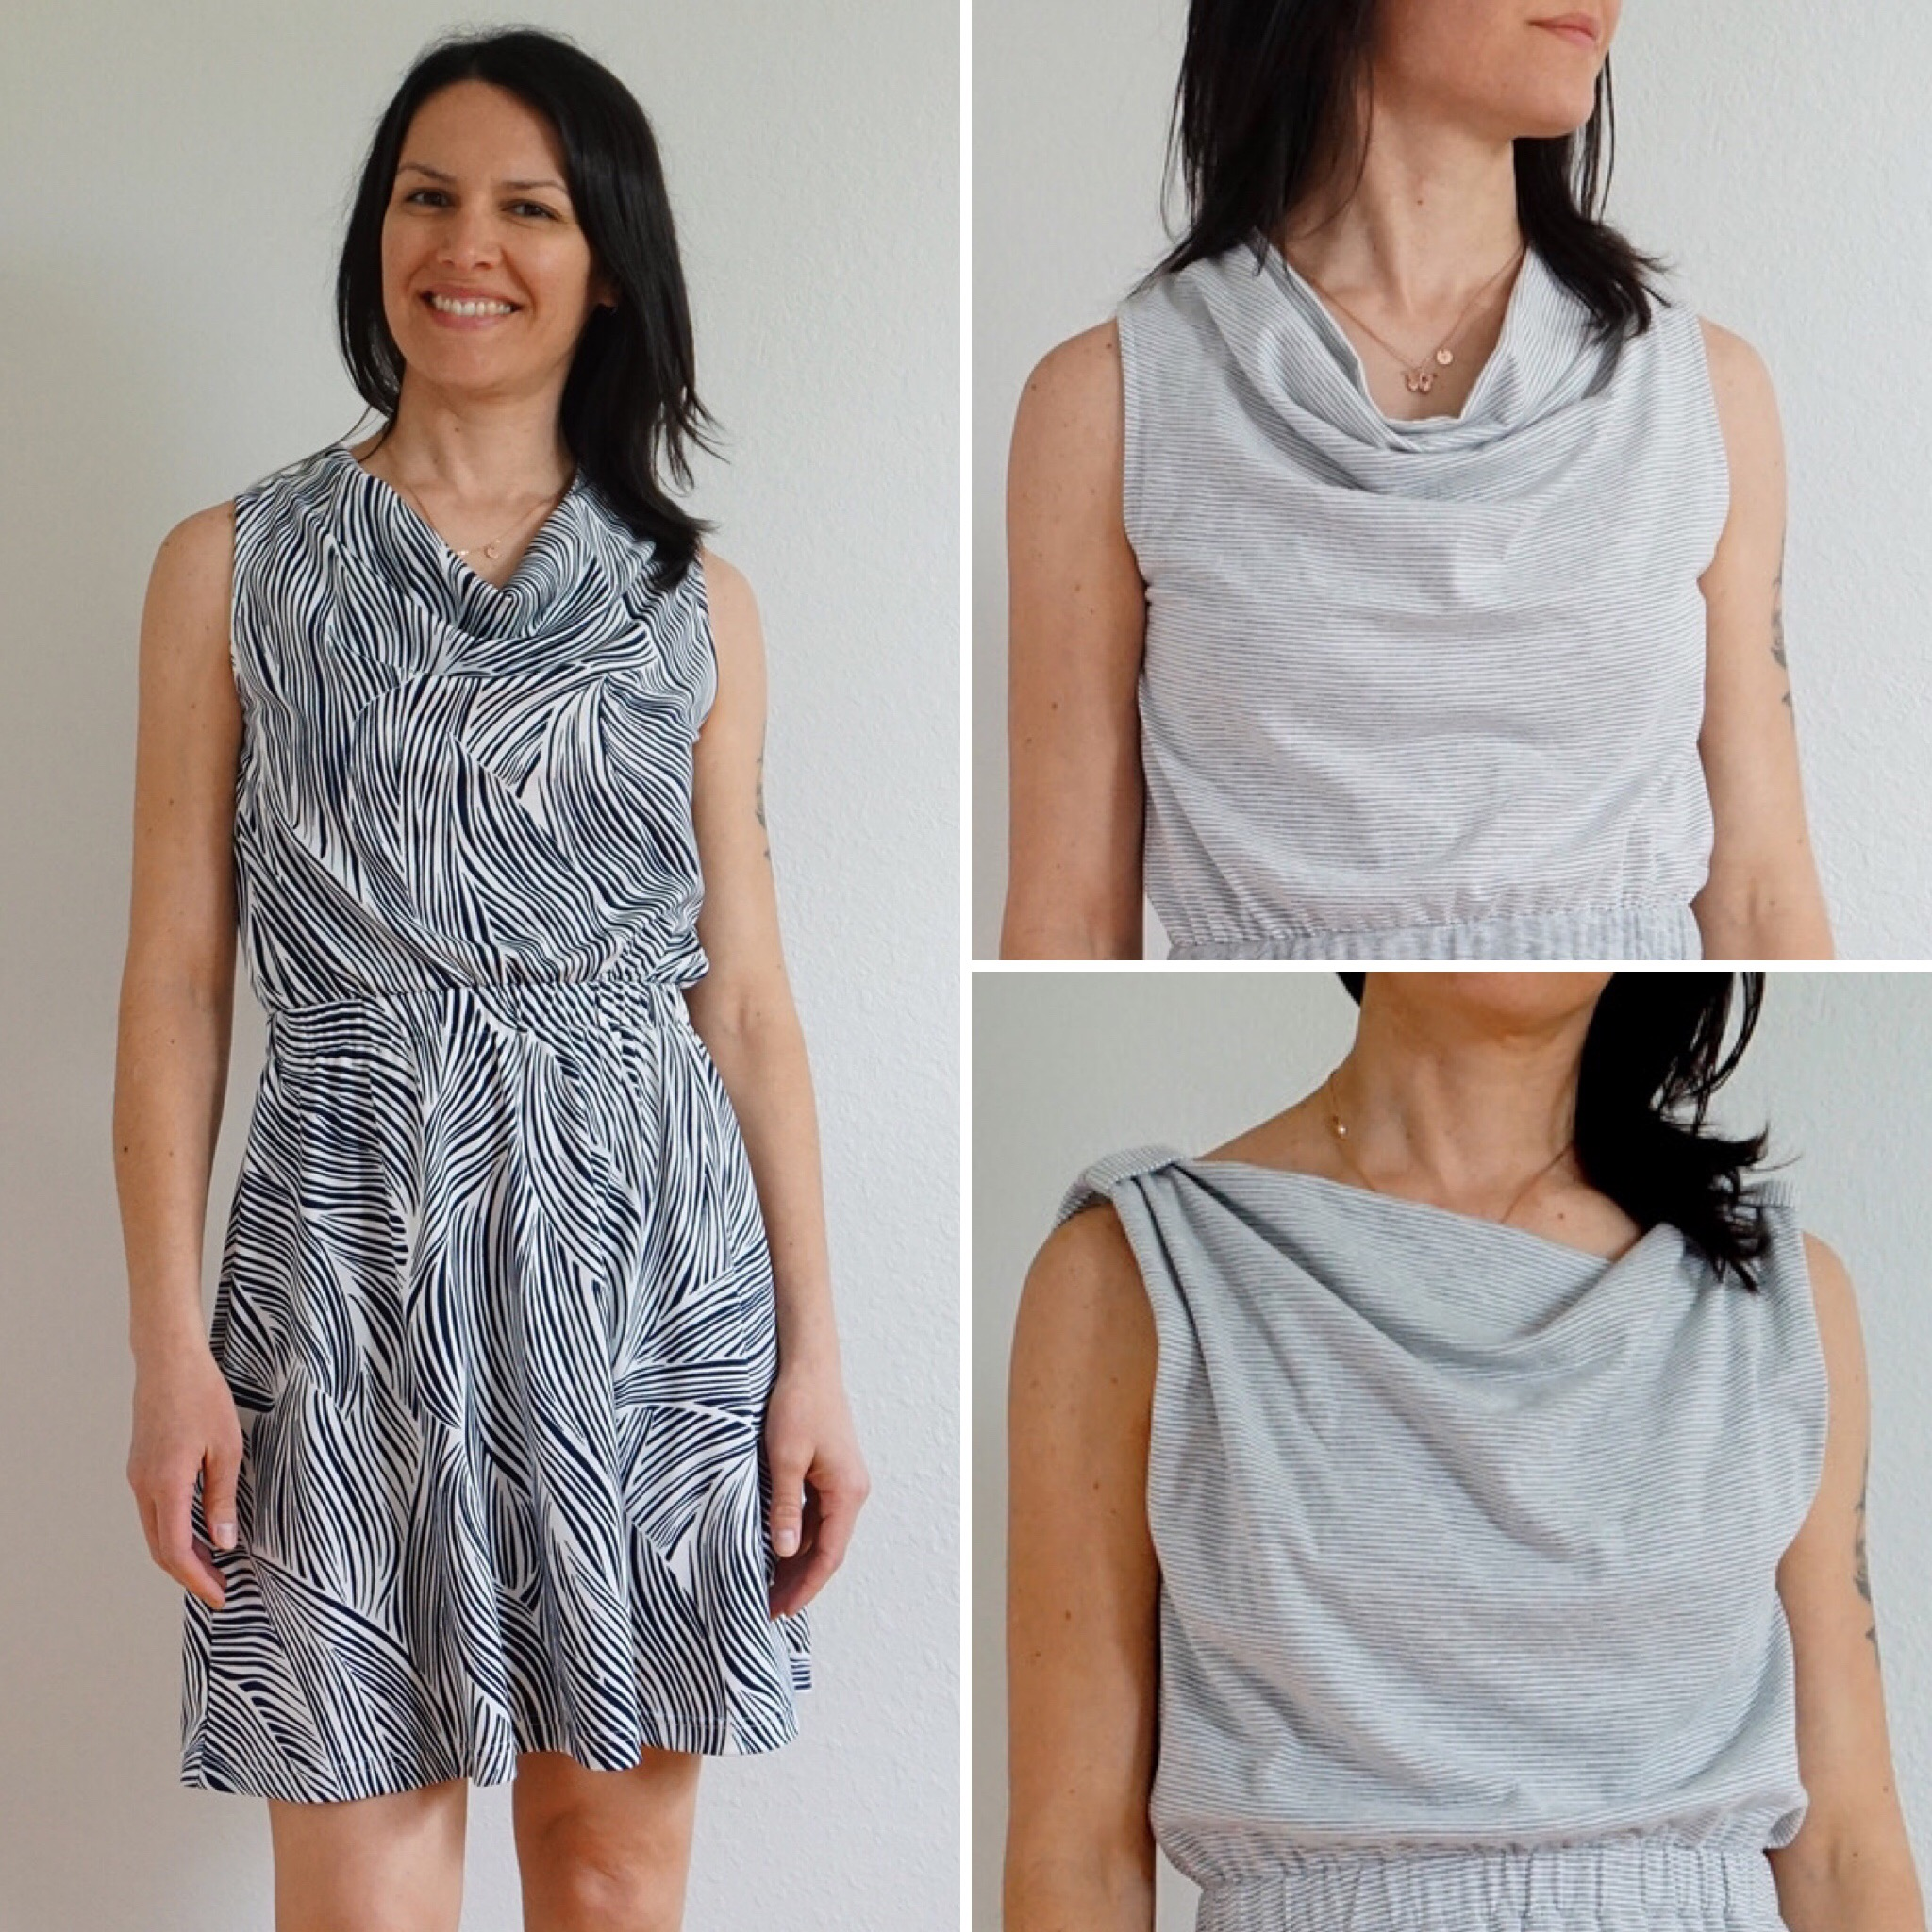 The Draped Cowl Neckline in Recycled Polyester and ITY Knit Fabrics